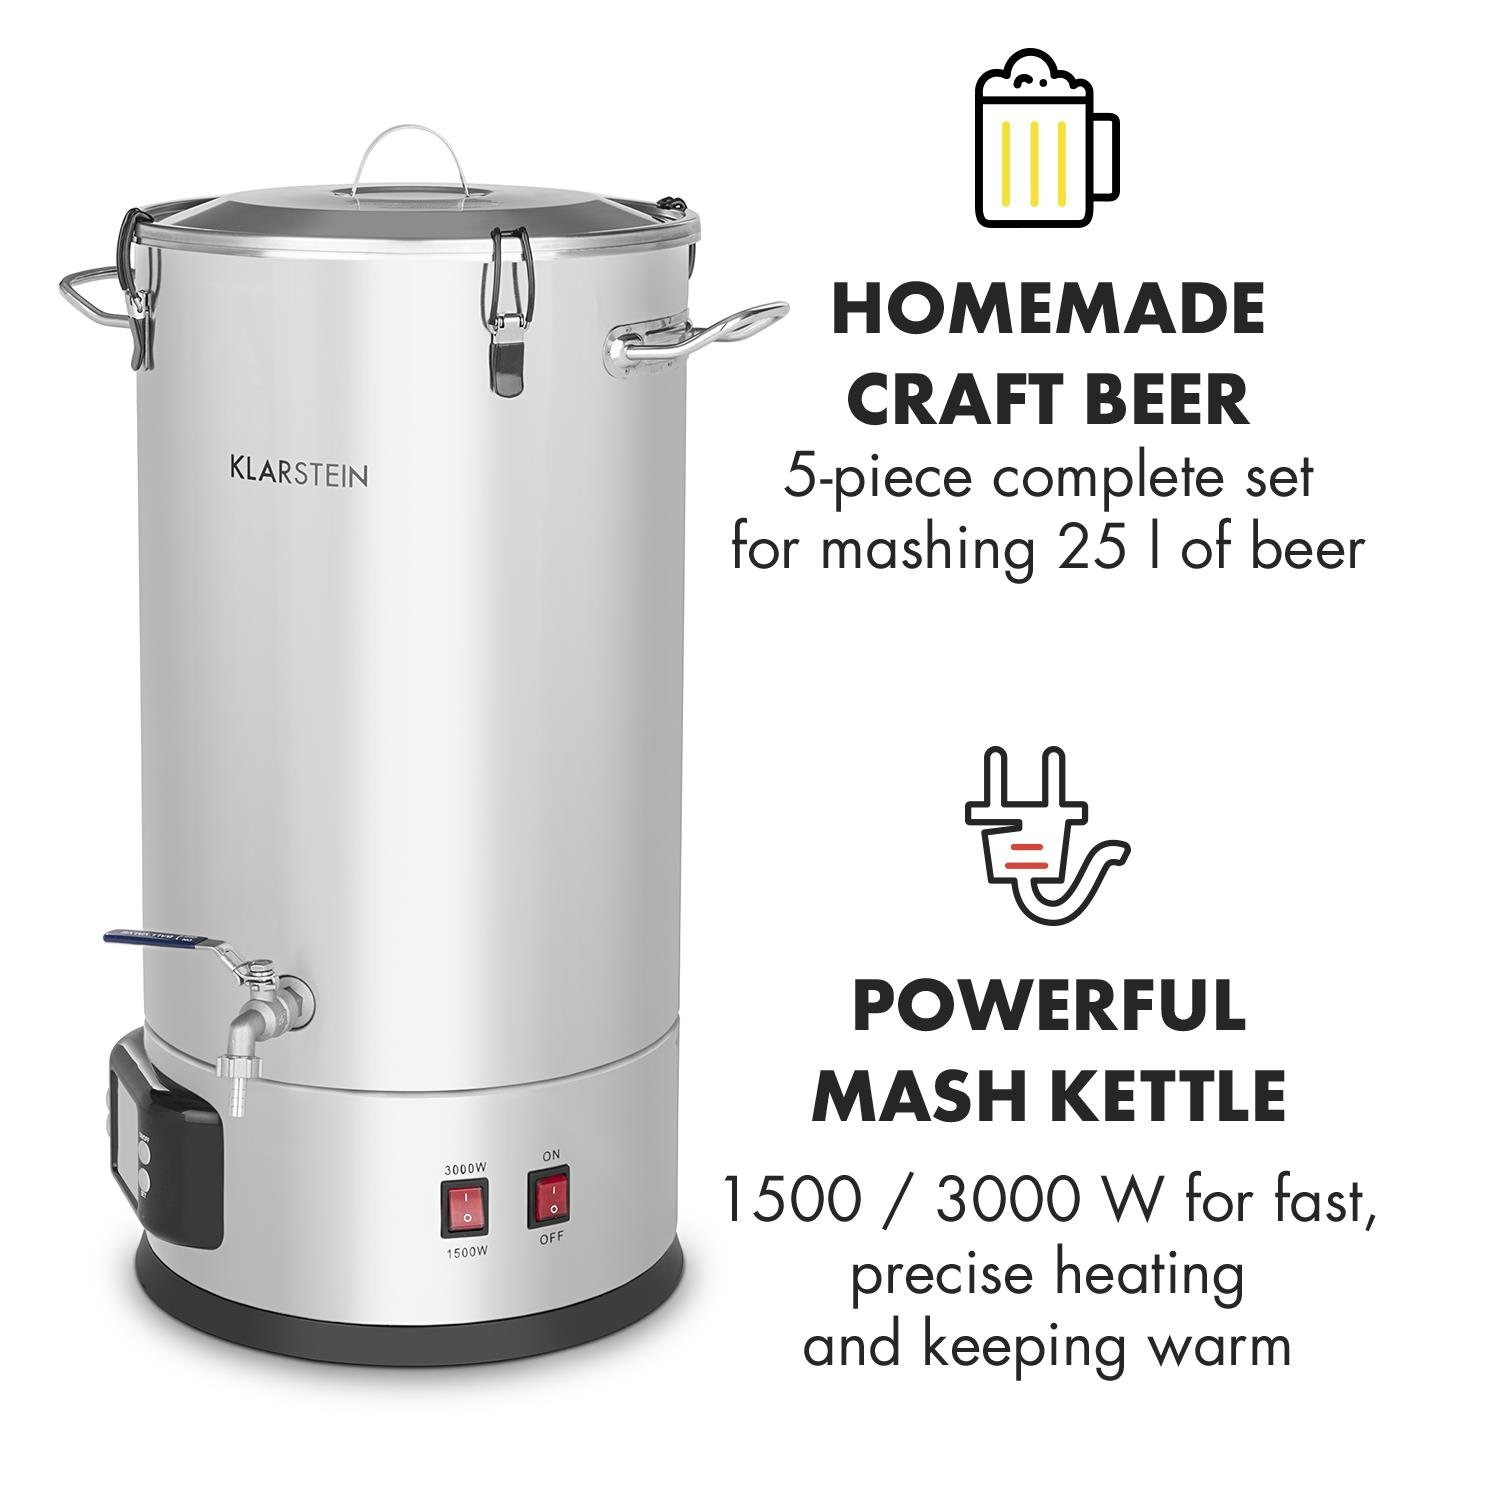 Klarstein Maischfest • Beer Brewing Device • Mash Tun • 5-Piece Set • 1500 and 3000 Watts Power • 25-litre Capacity • LCD Display and Touch Control Panel • Temperature • Stainless Steel by KLARSTEIN (Image #2)